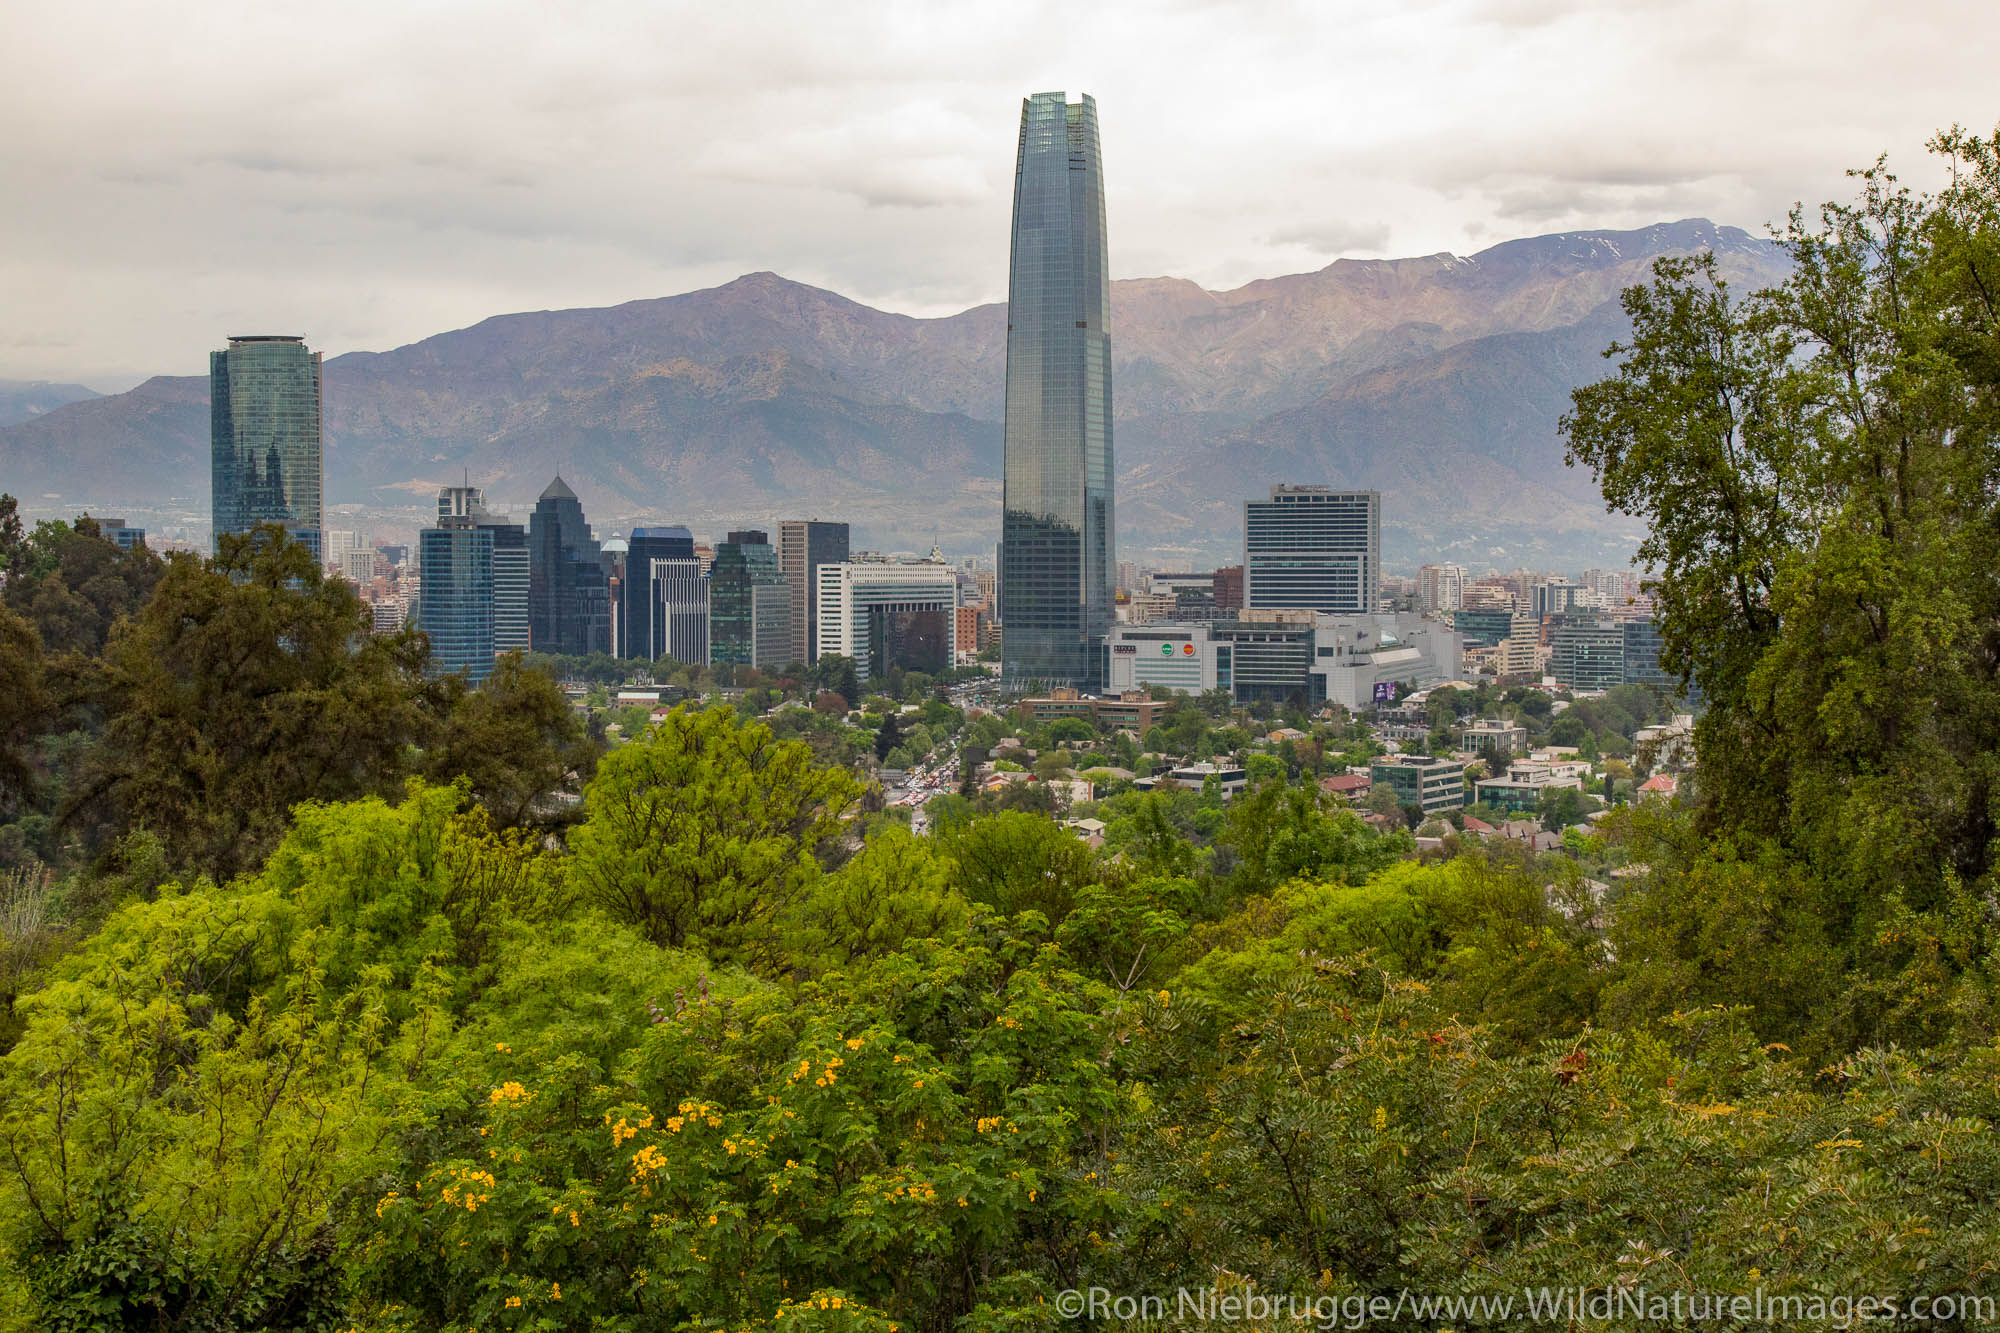 View from San Cristobal Hil, Santiago, Chile